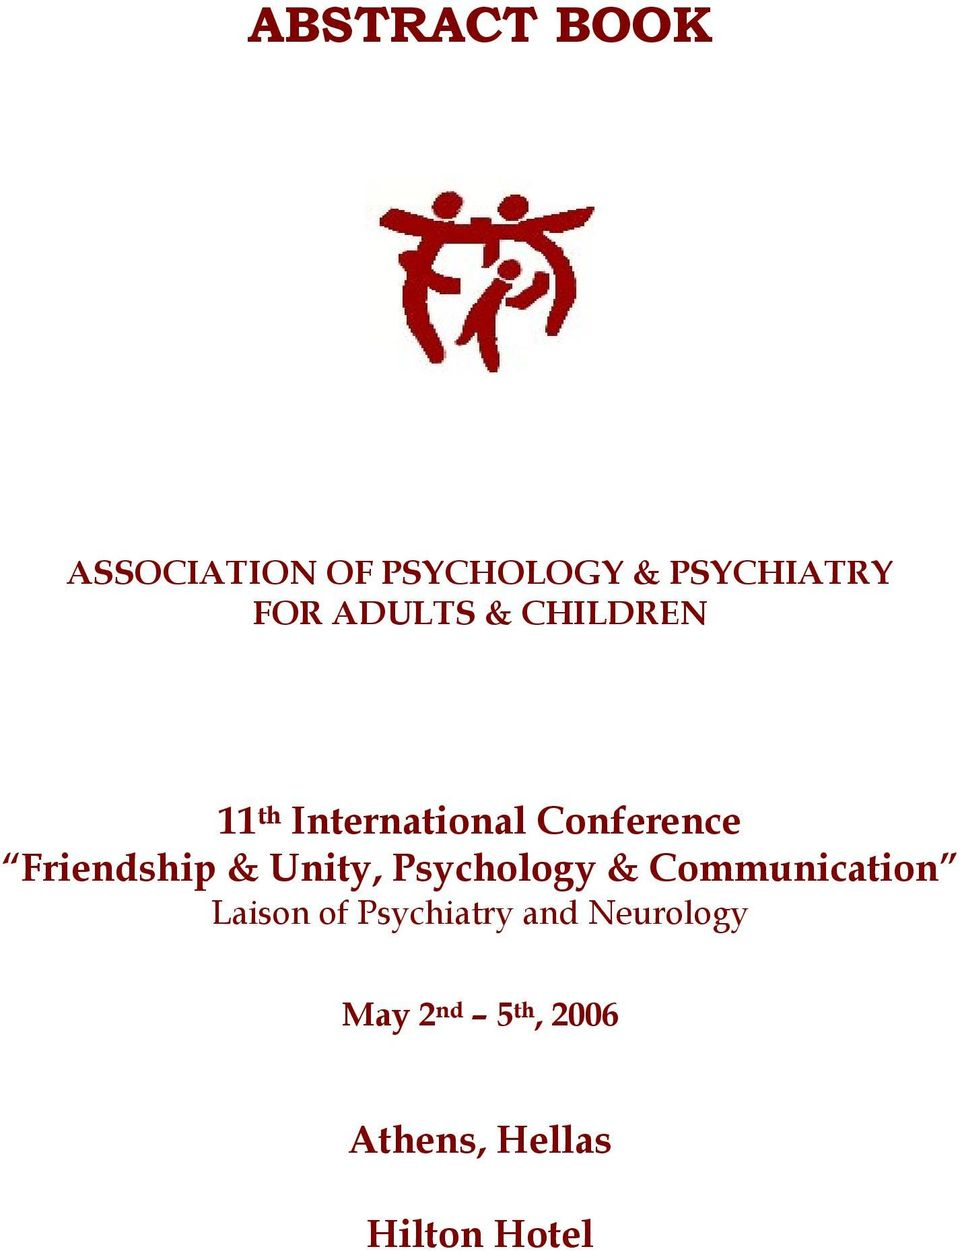 Friendship & Unity, Psychology & Communication Laison of